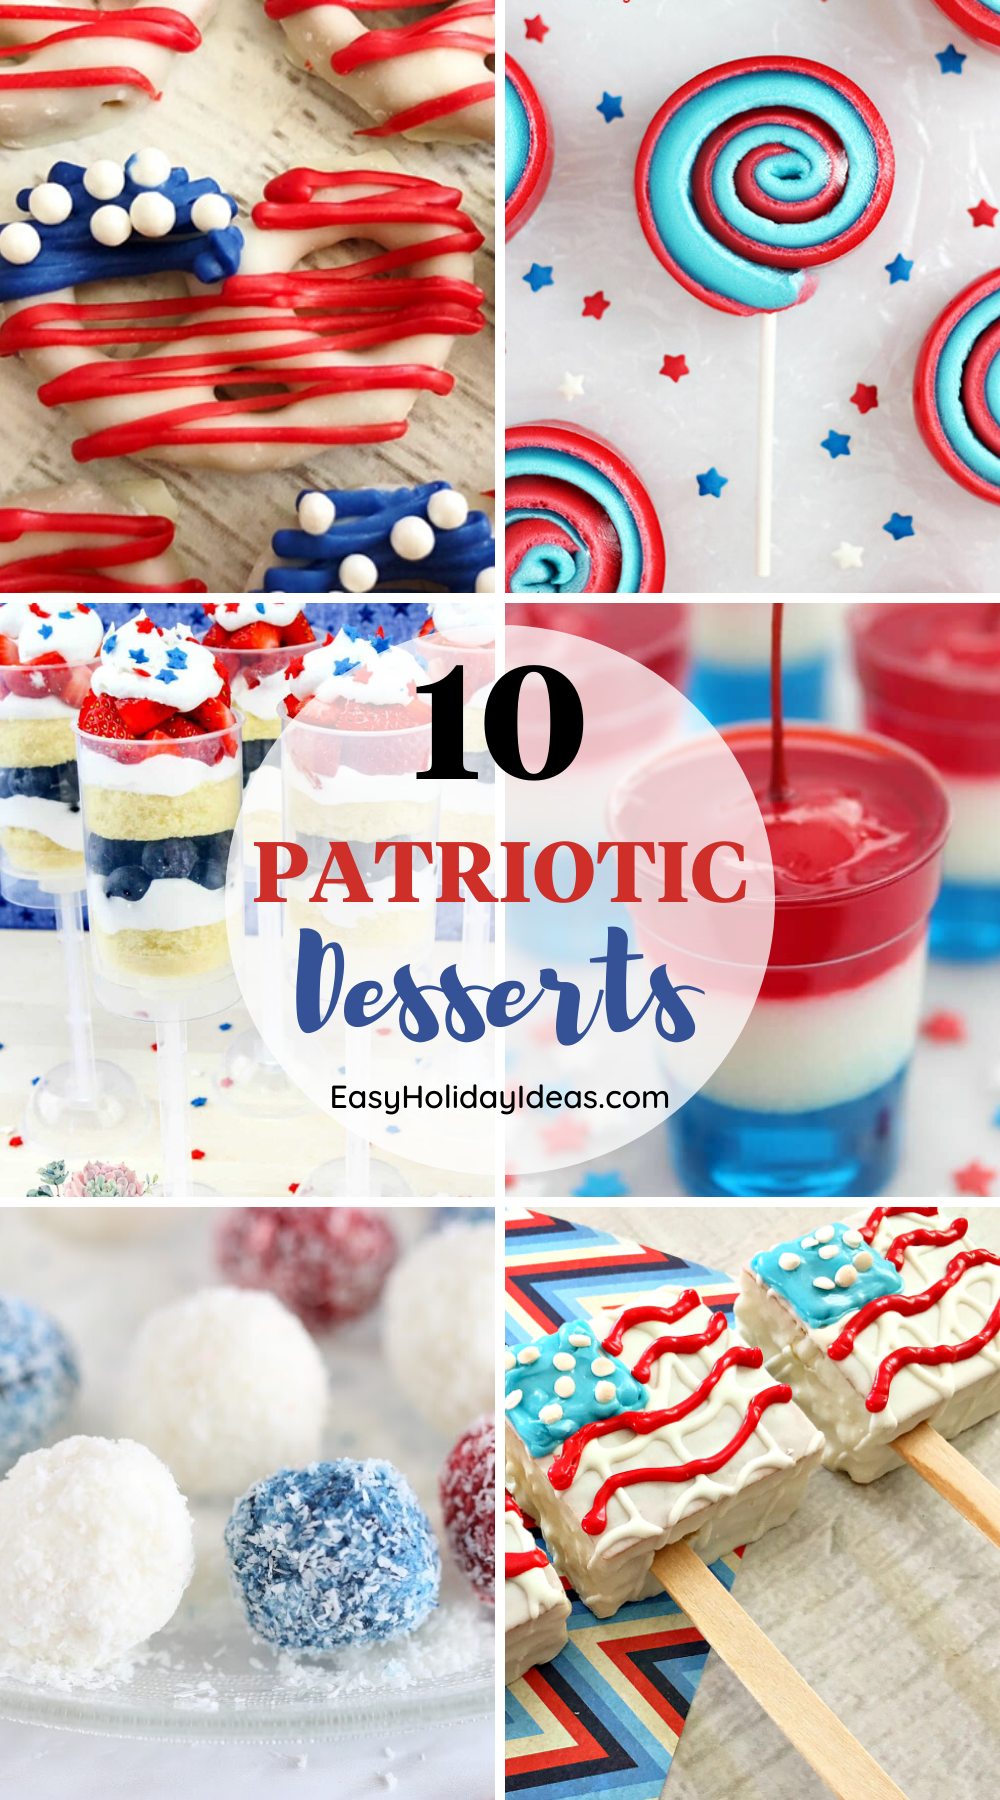 The Fourth of July is the biggest summer holiday in America and it's a perfect time to make Red White and Blue Desserts.